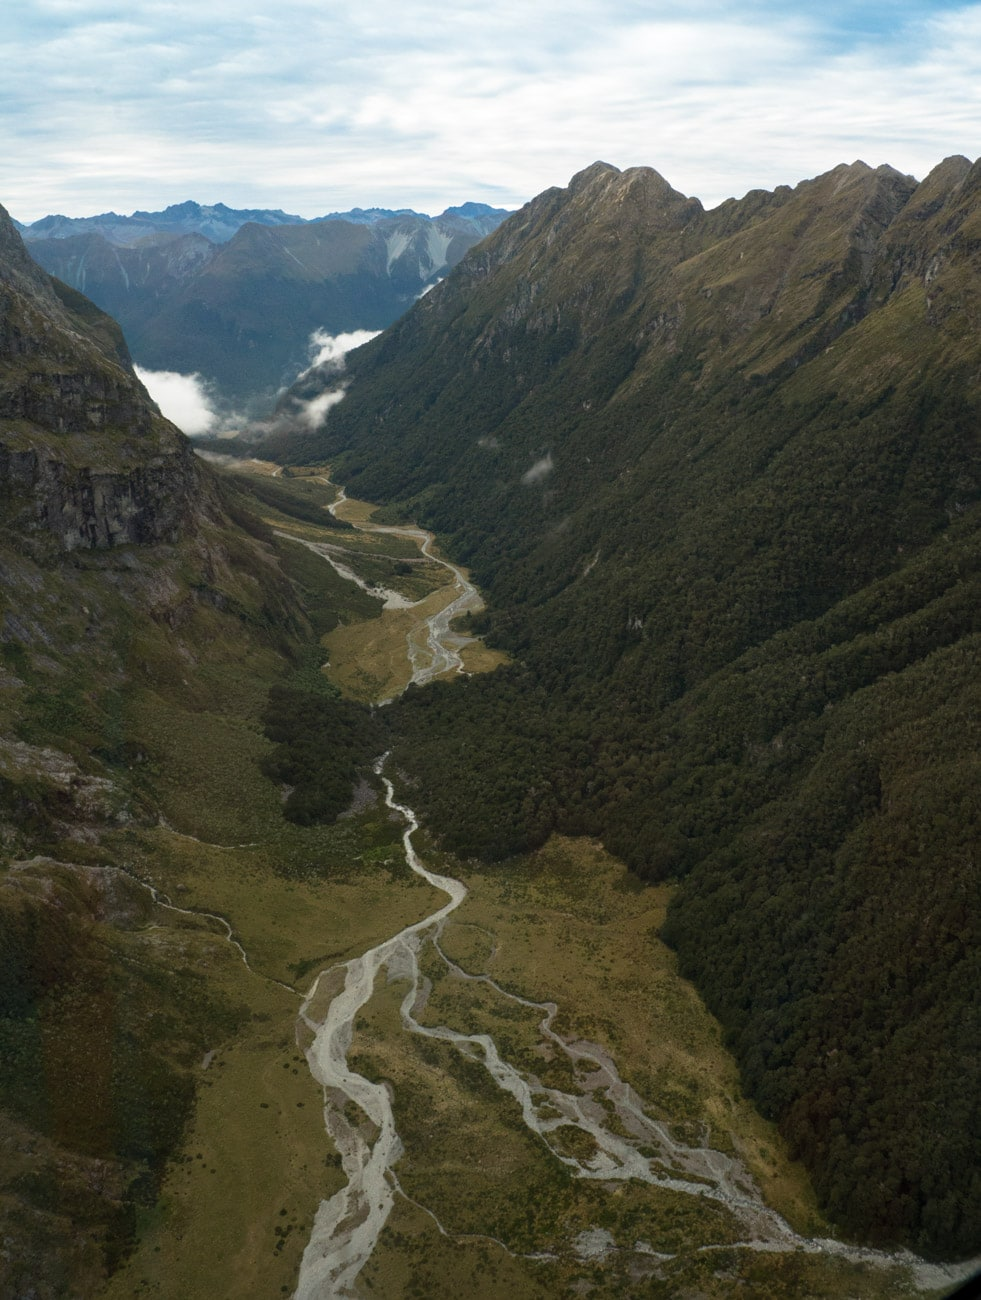 This is the valley that New Zealand's Milford Trek travels through